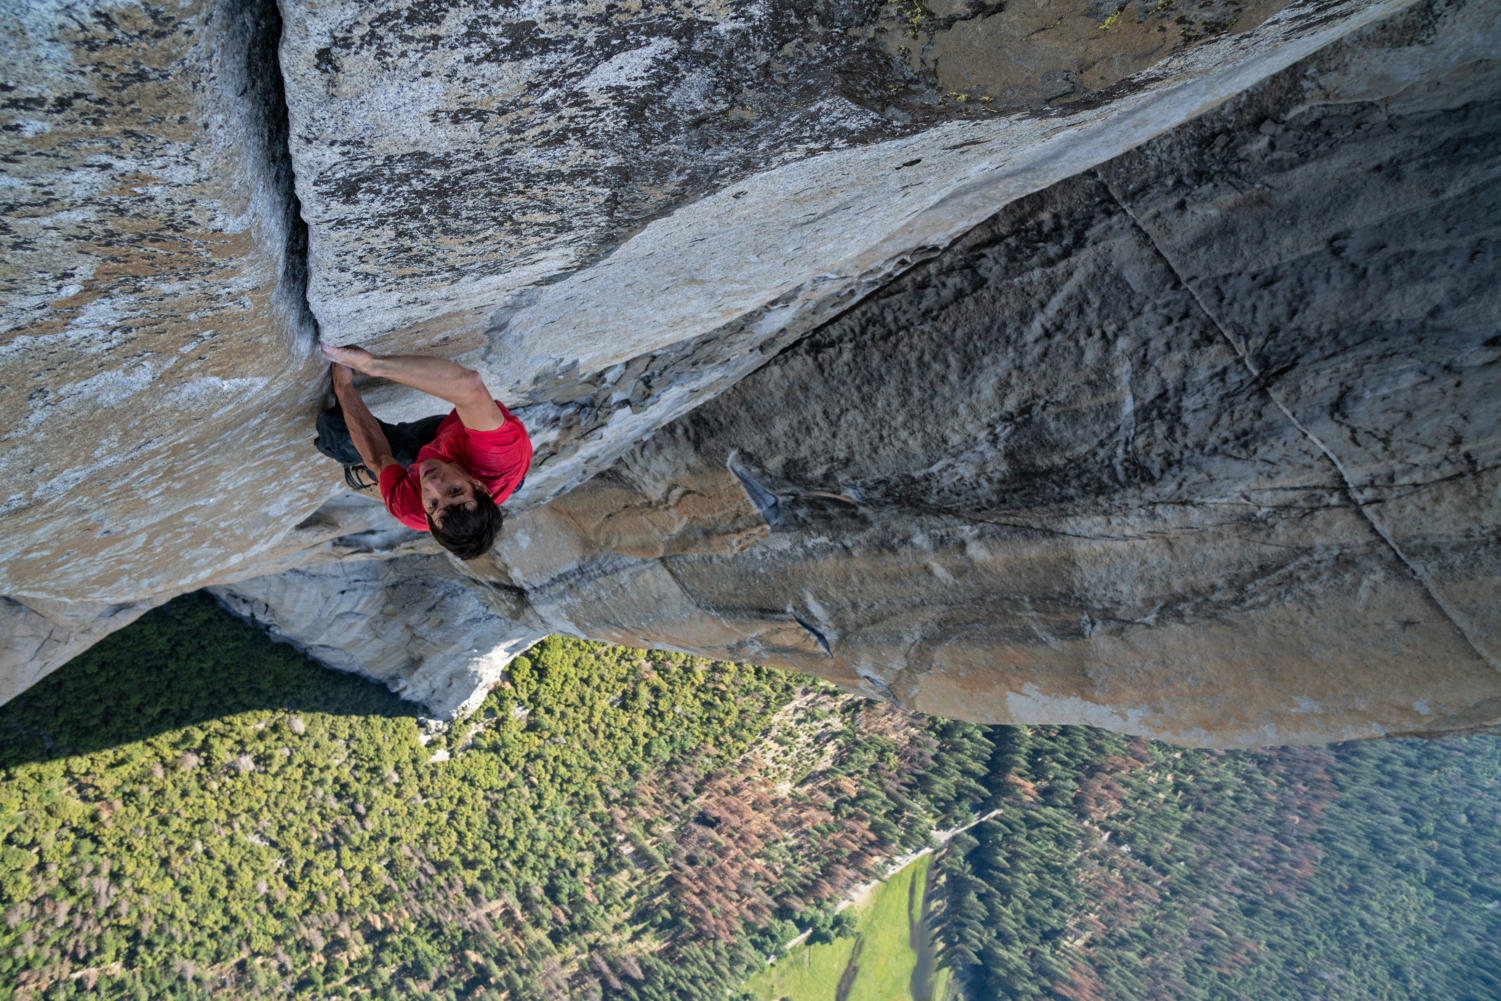 Alex Honnold becomes the first person to climb Yosemite National Park's El Capitan without any rope.